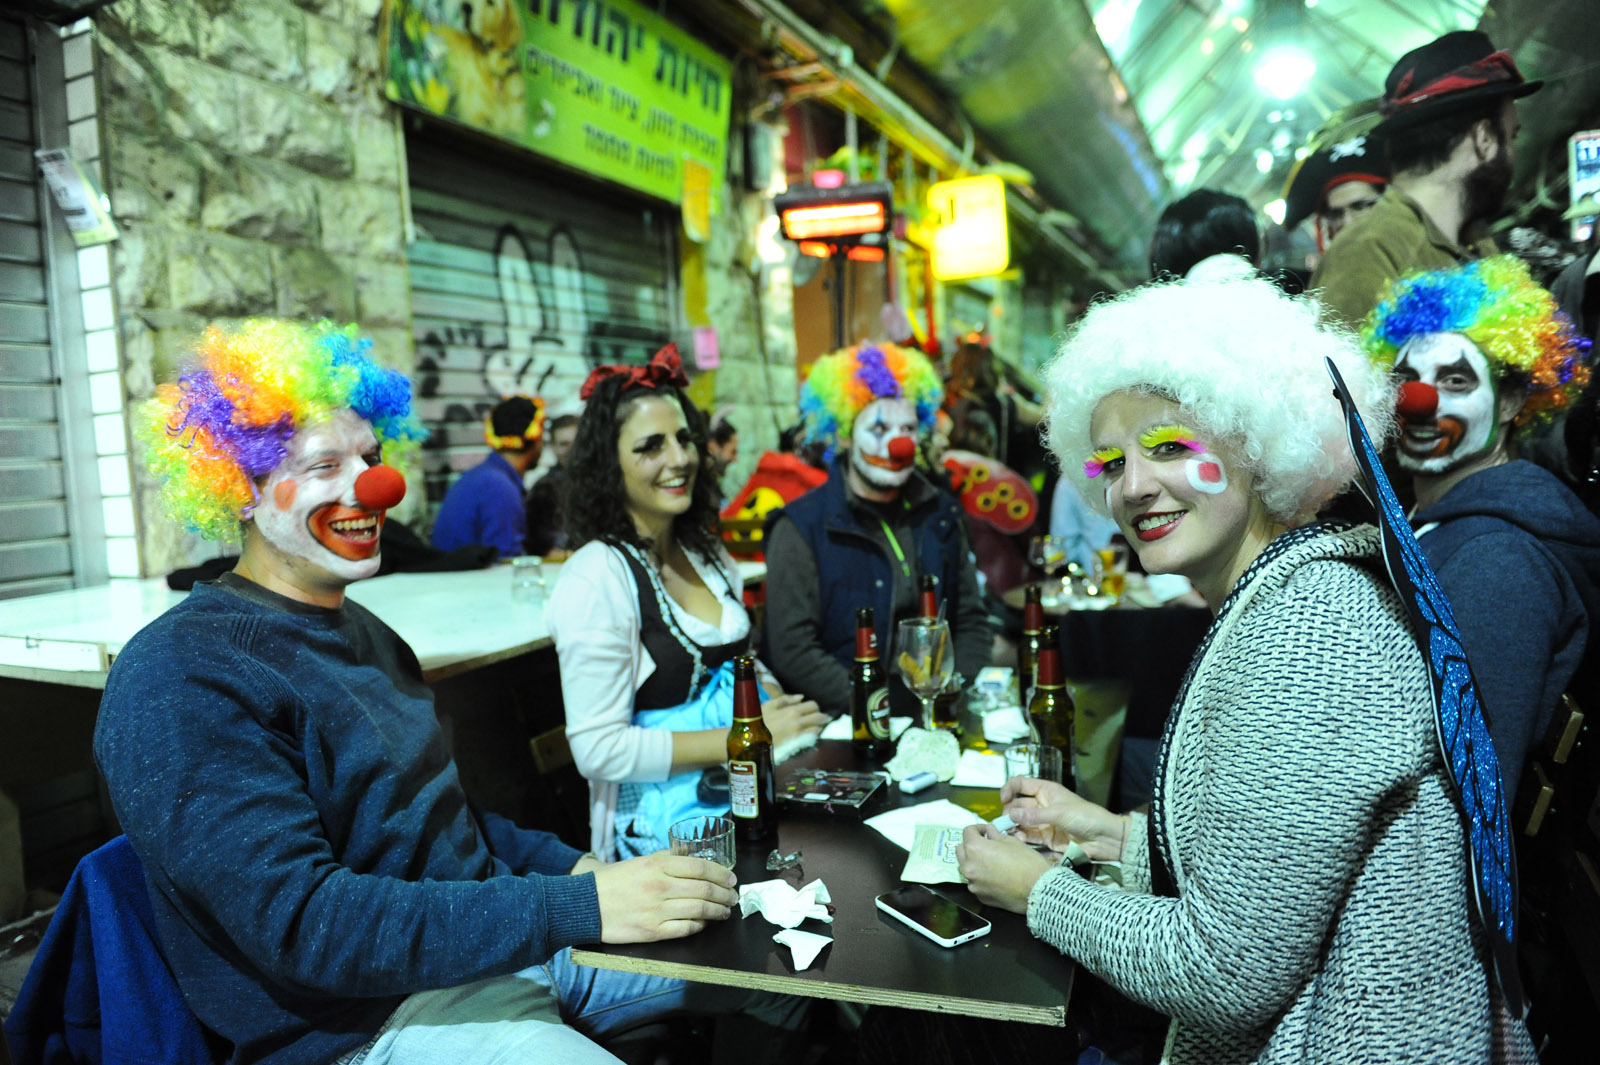 Israelis dressed up in costumes for the jewish holiday of Purim seen in central Jerusalem on March 5, 2015. Photo by Mendy Hechtman/Flash90